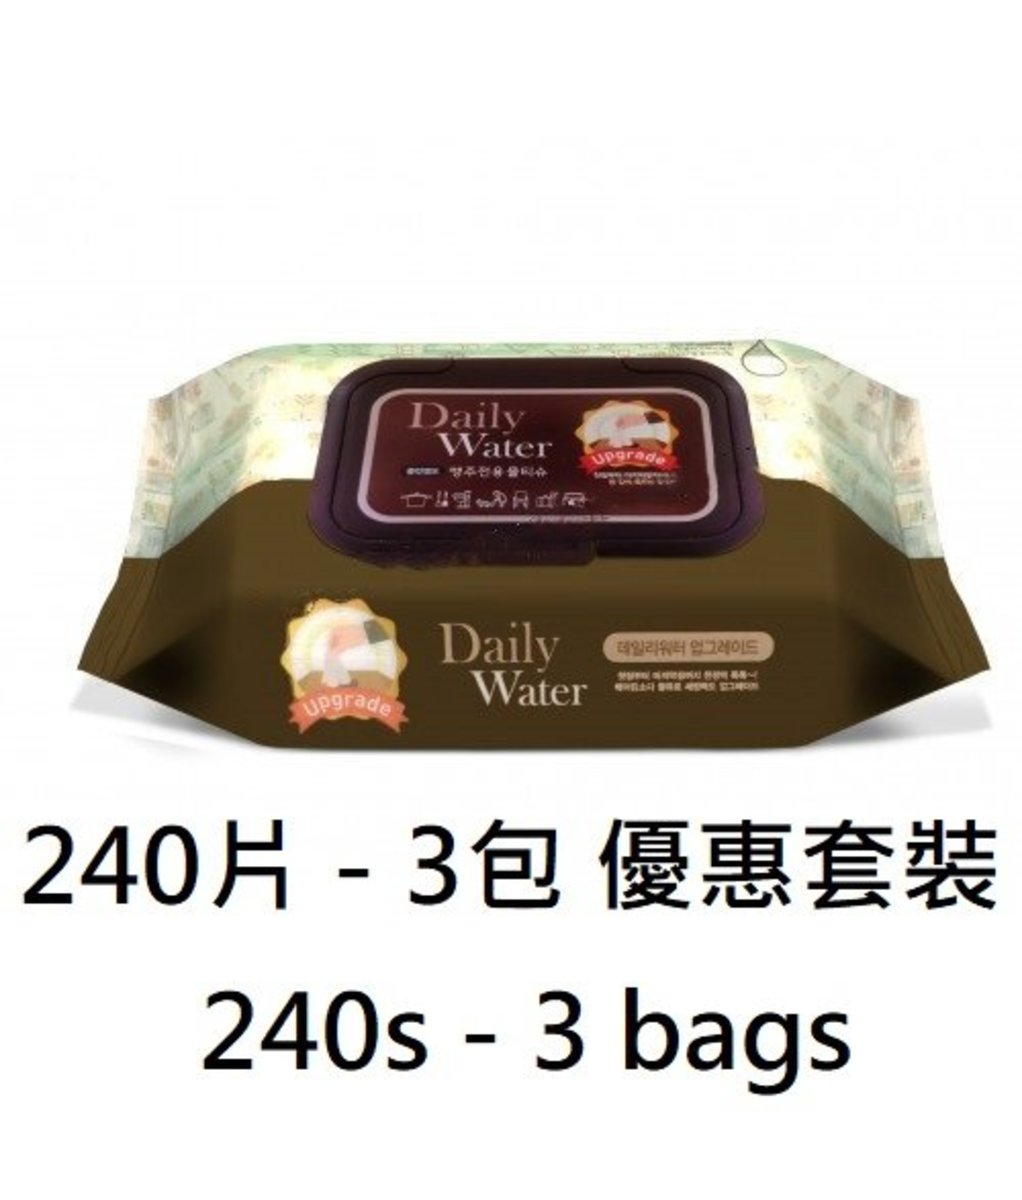 Kitchen Cleaning Tissue - 3 bags of 240s (made in Korea)